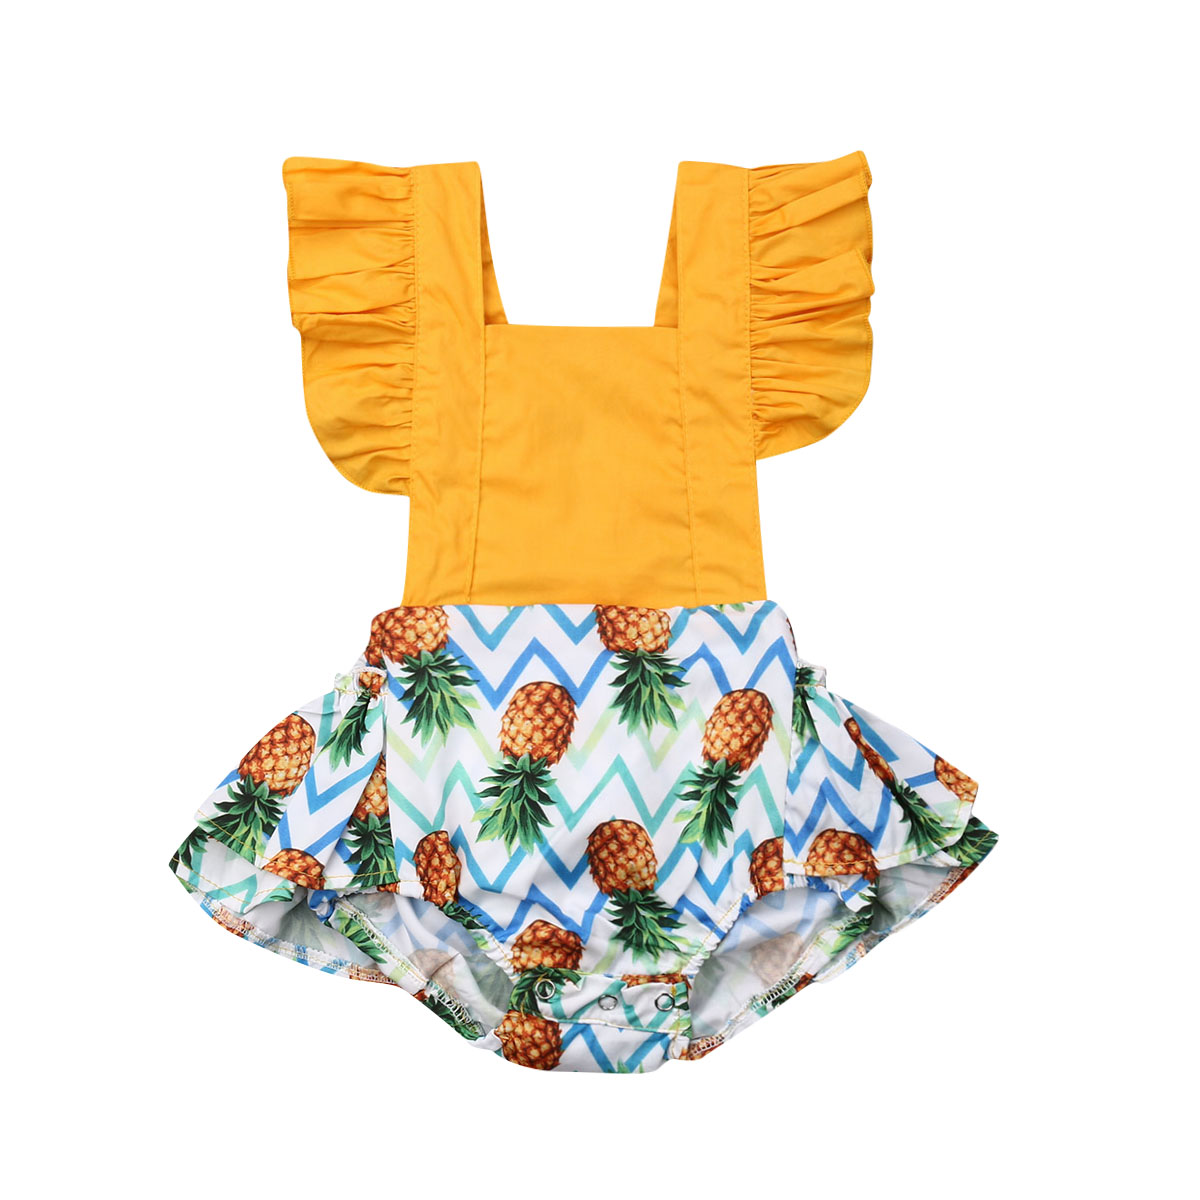 Newborn Baby Girl Outfits Kids Summer 2019 Pineapple Ruffle Sleeves Bow Backless   Romper   Jumpsuit One-pieces Sunsuit